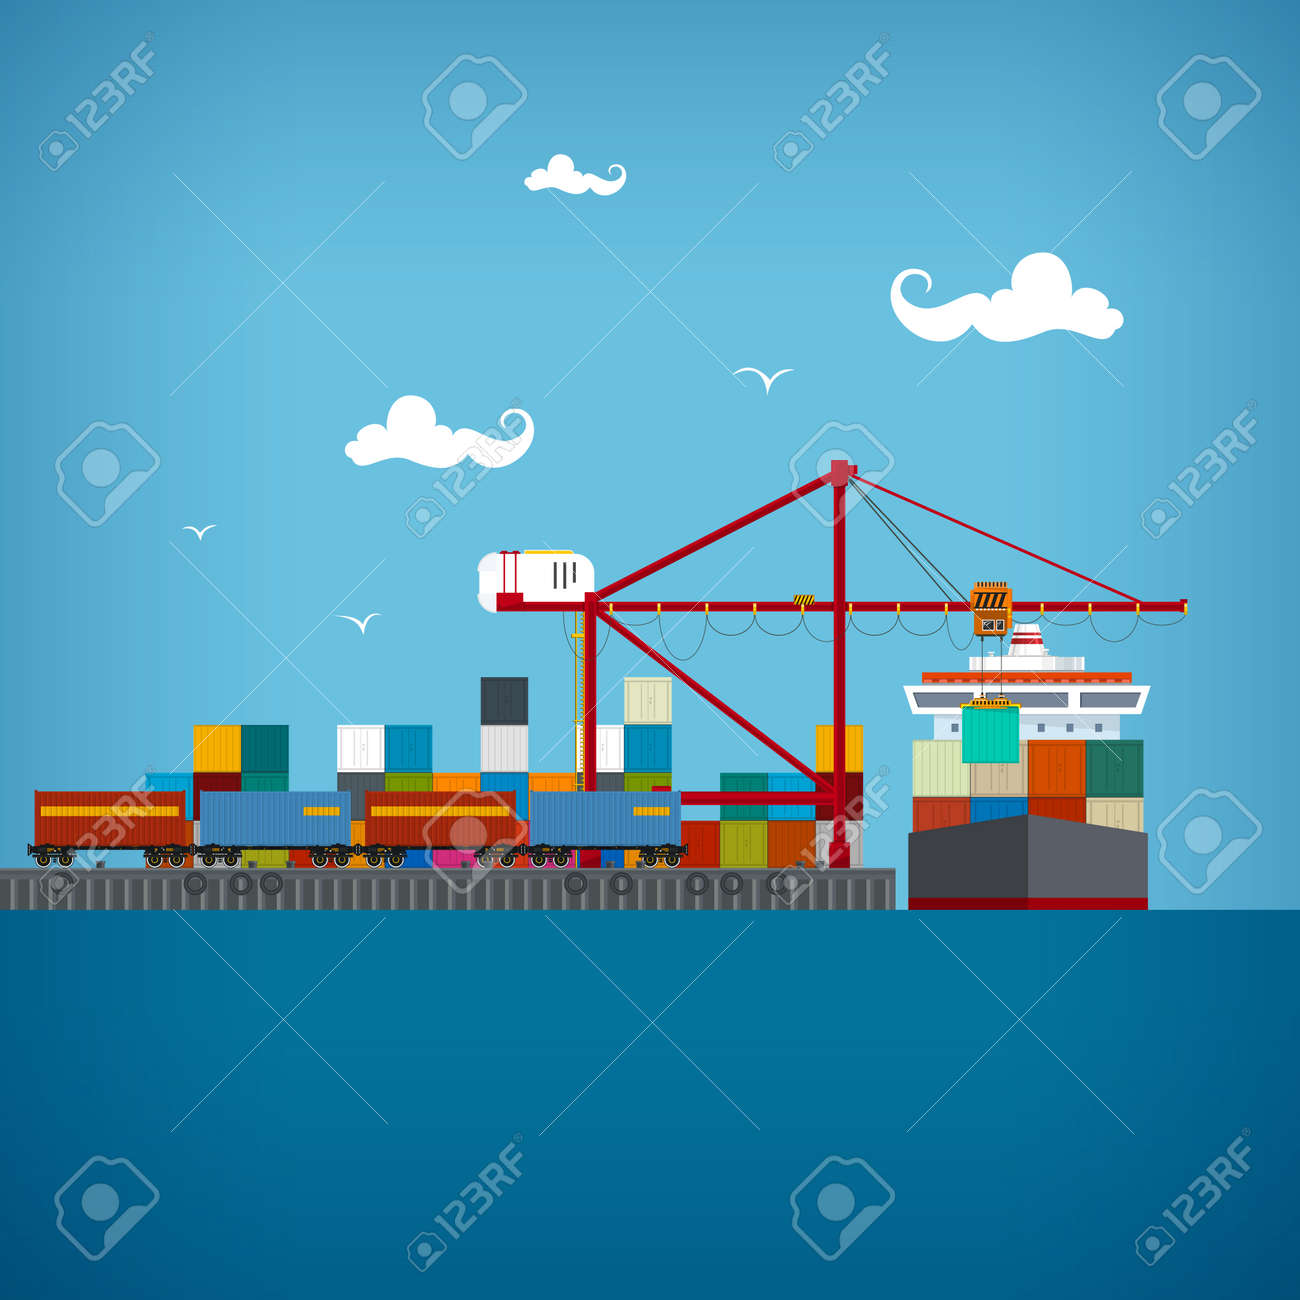 Sea port, unloading of cargo containers from the container carrier - 35963045